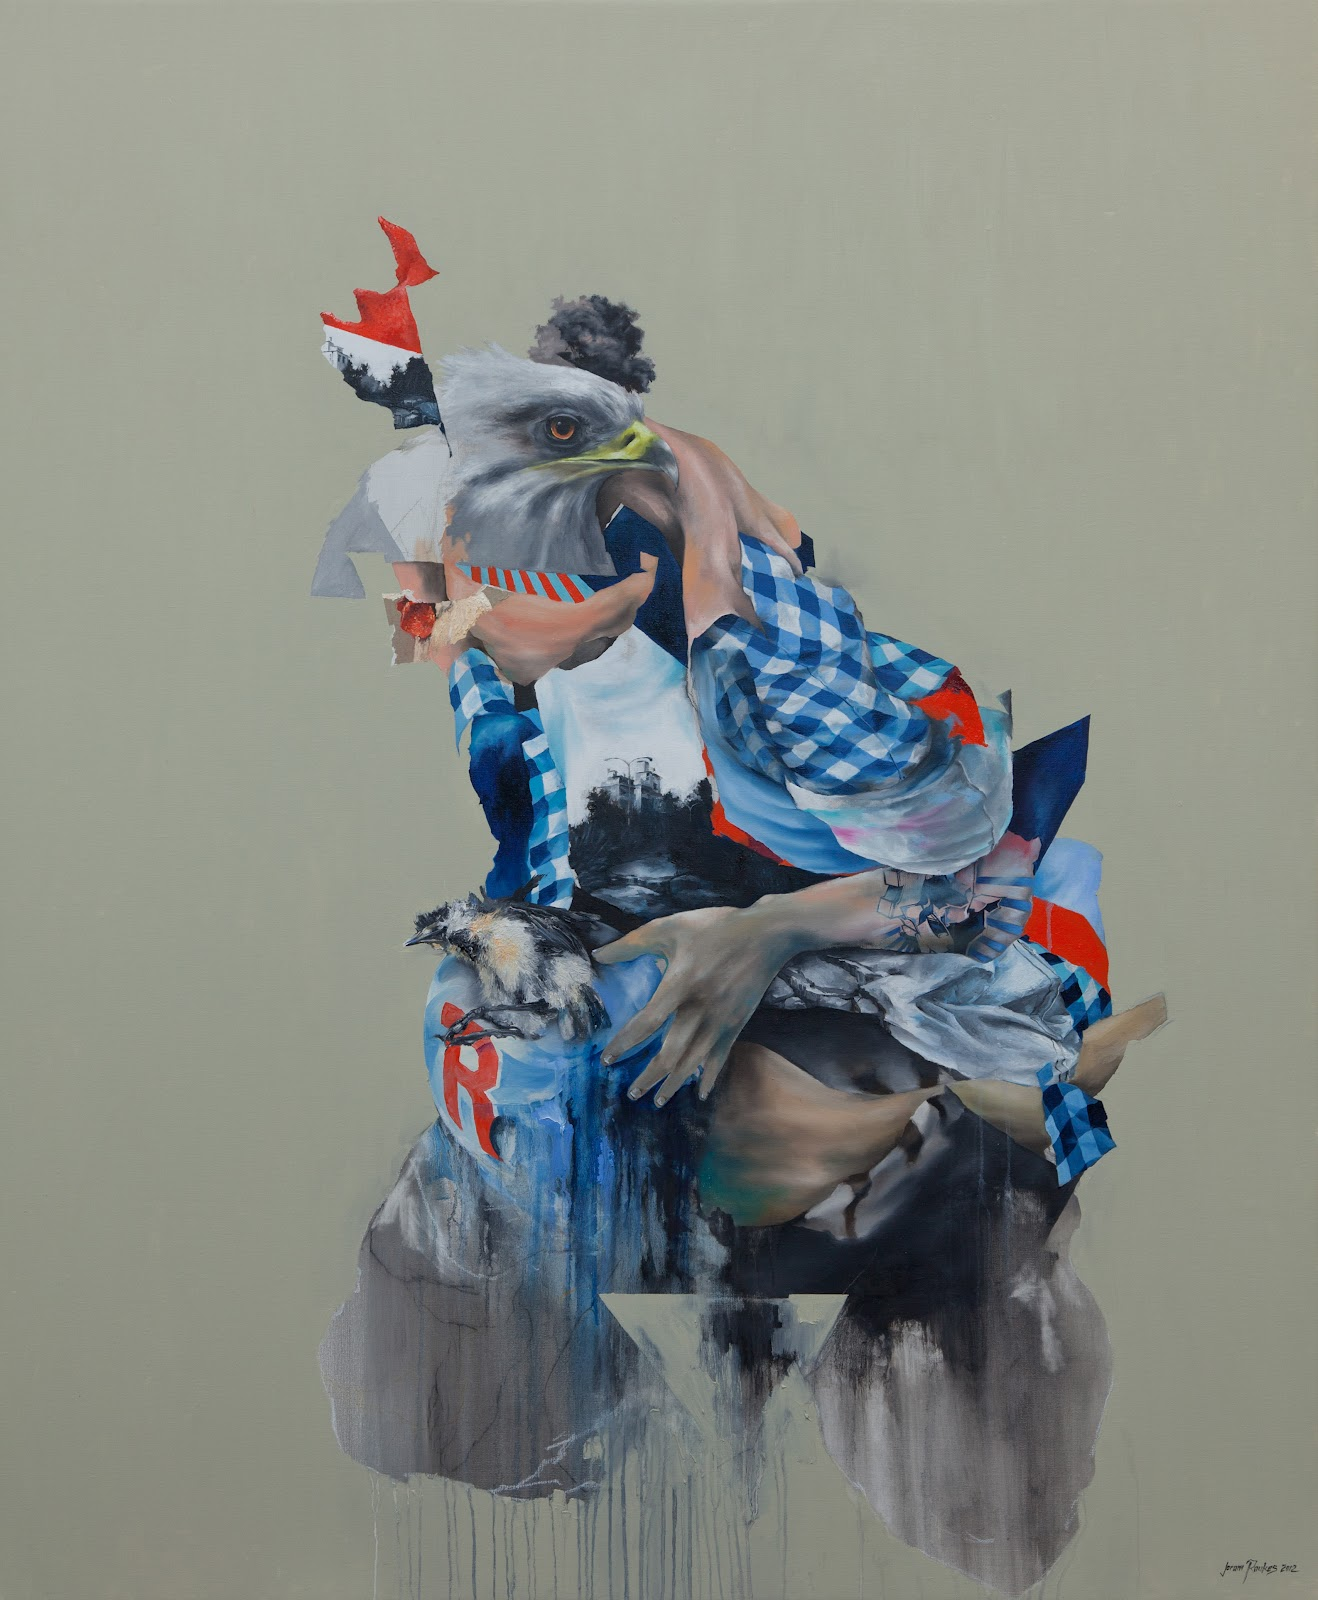 More Works by Joram Roukes: joram_4_20120921_1586224475.jpg